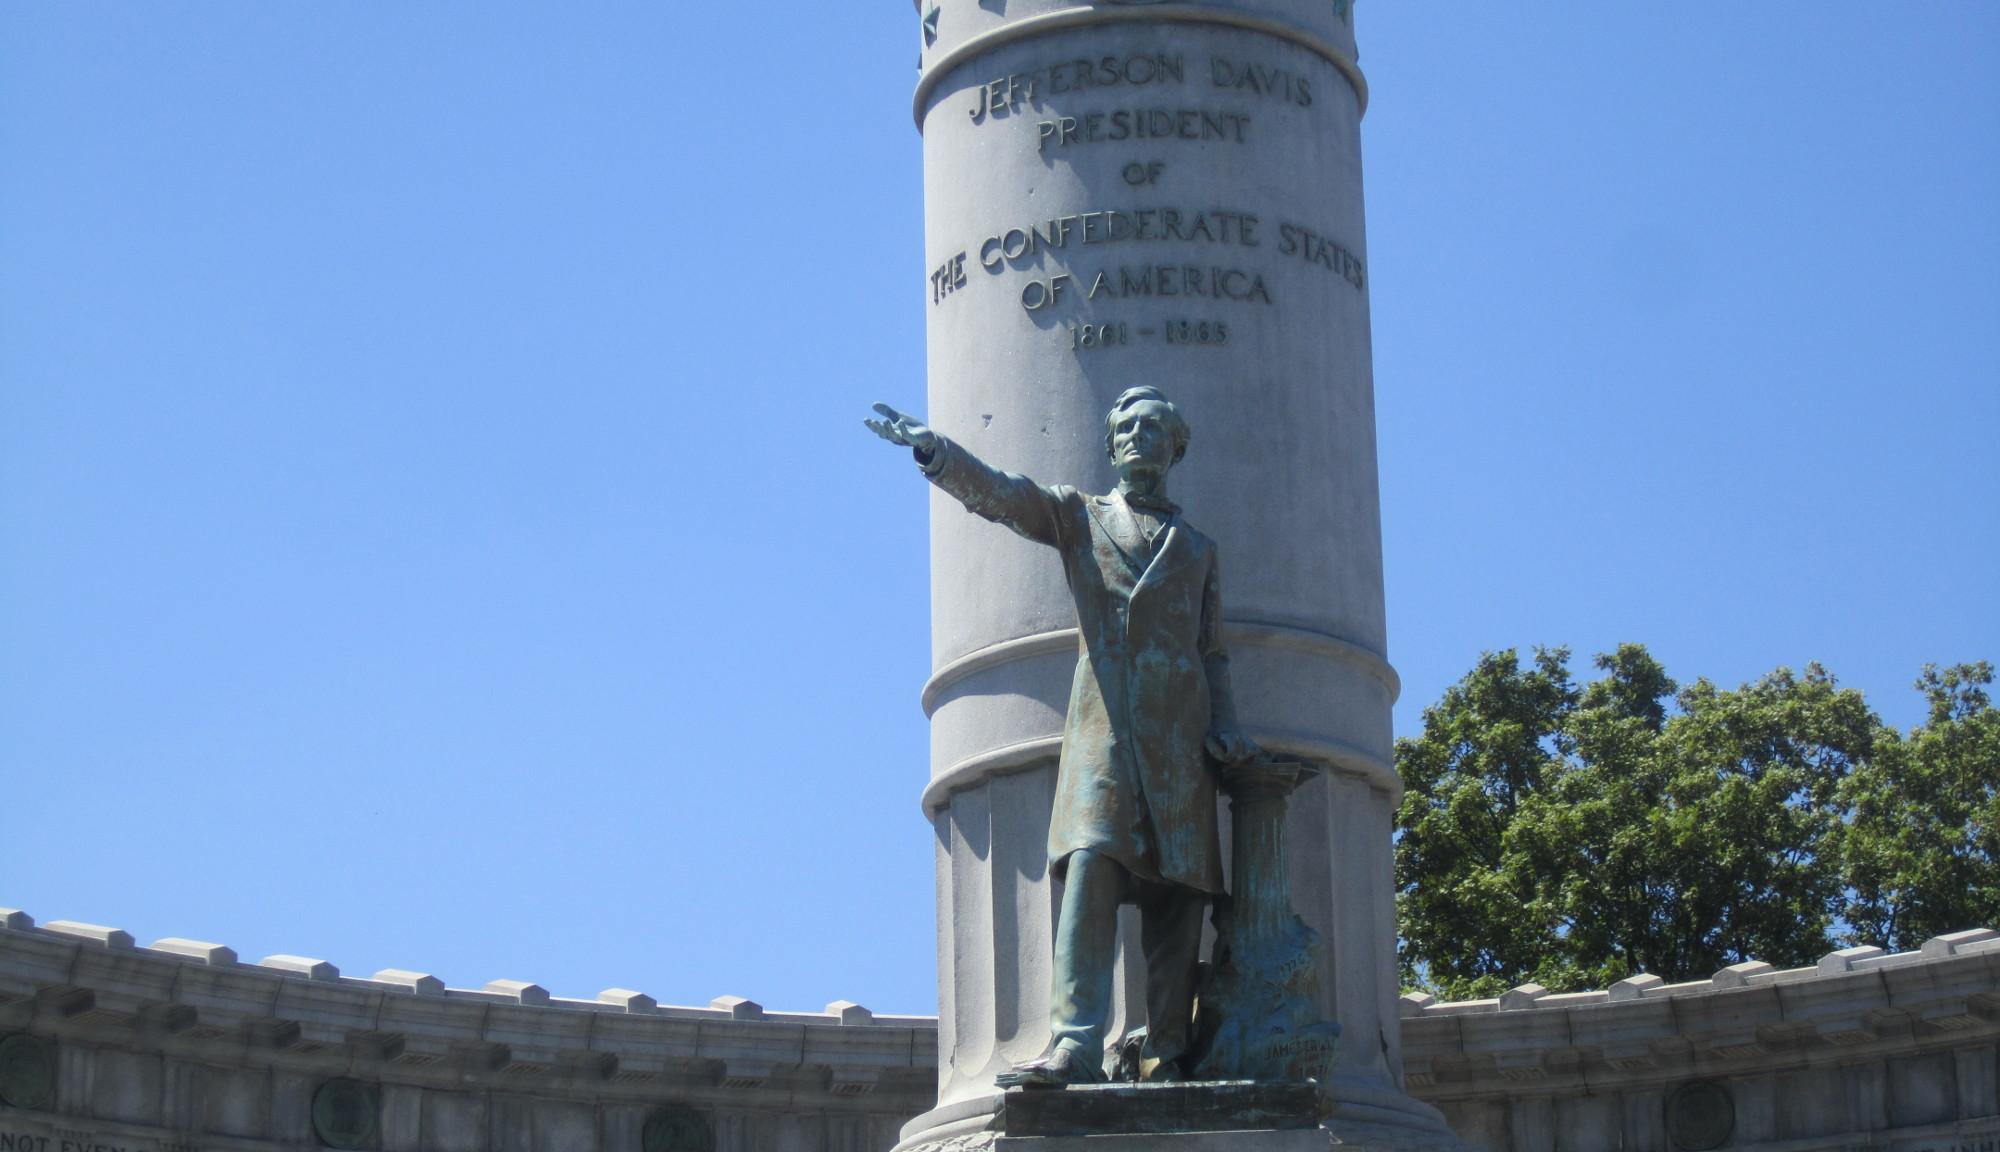 Jefferson Davis monument, Richmond, VA